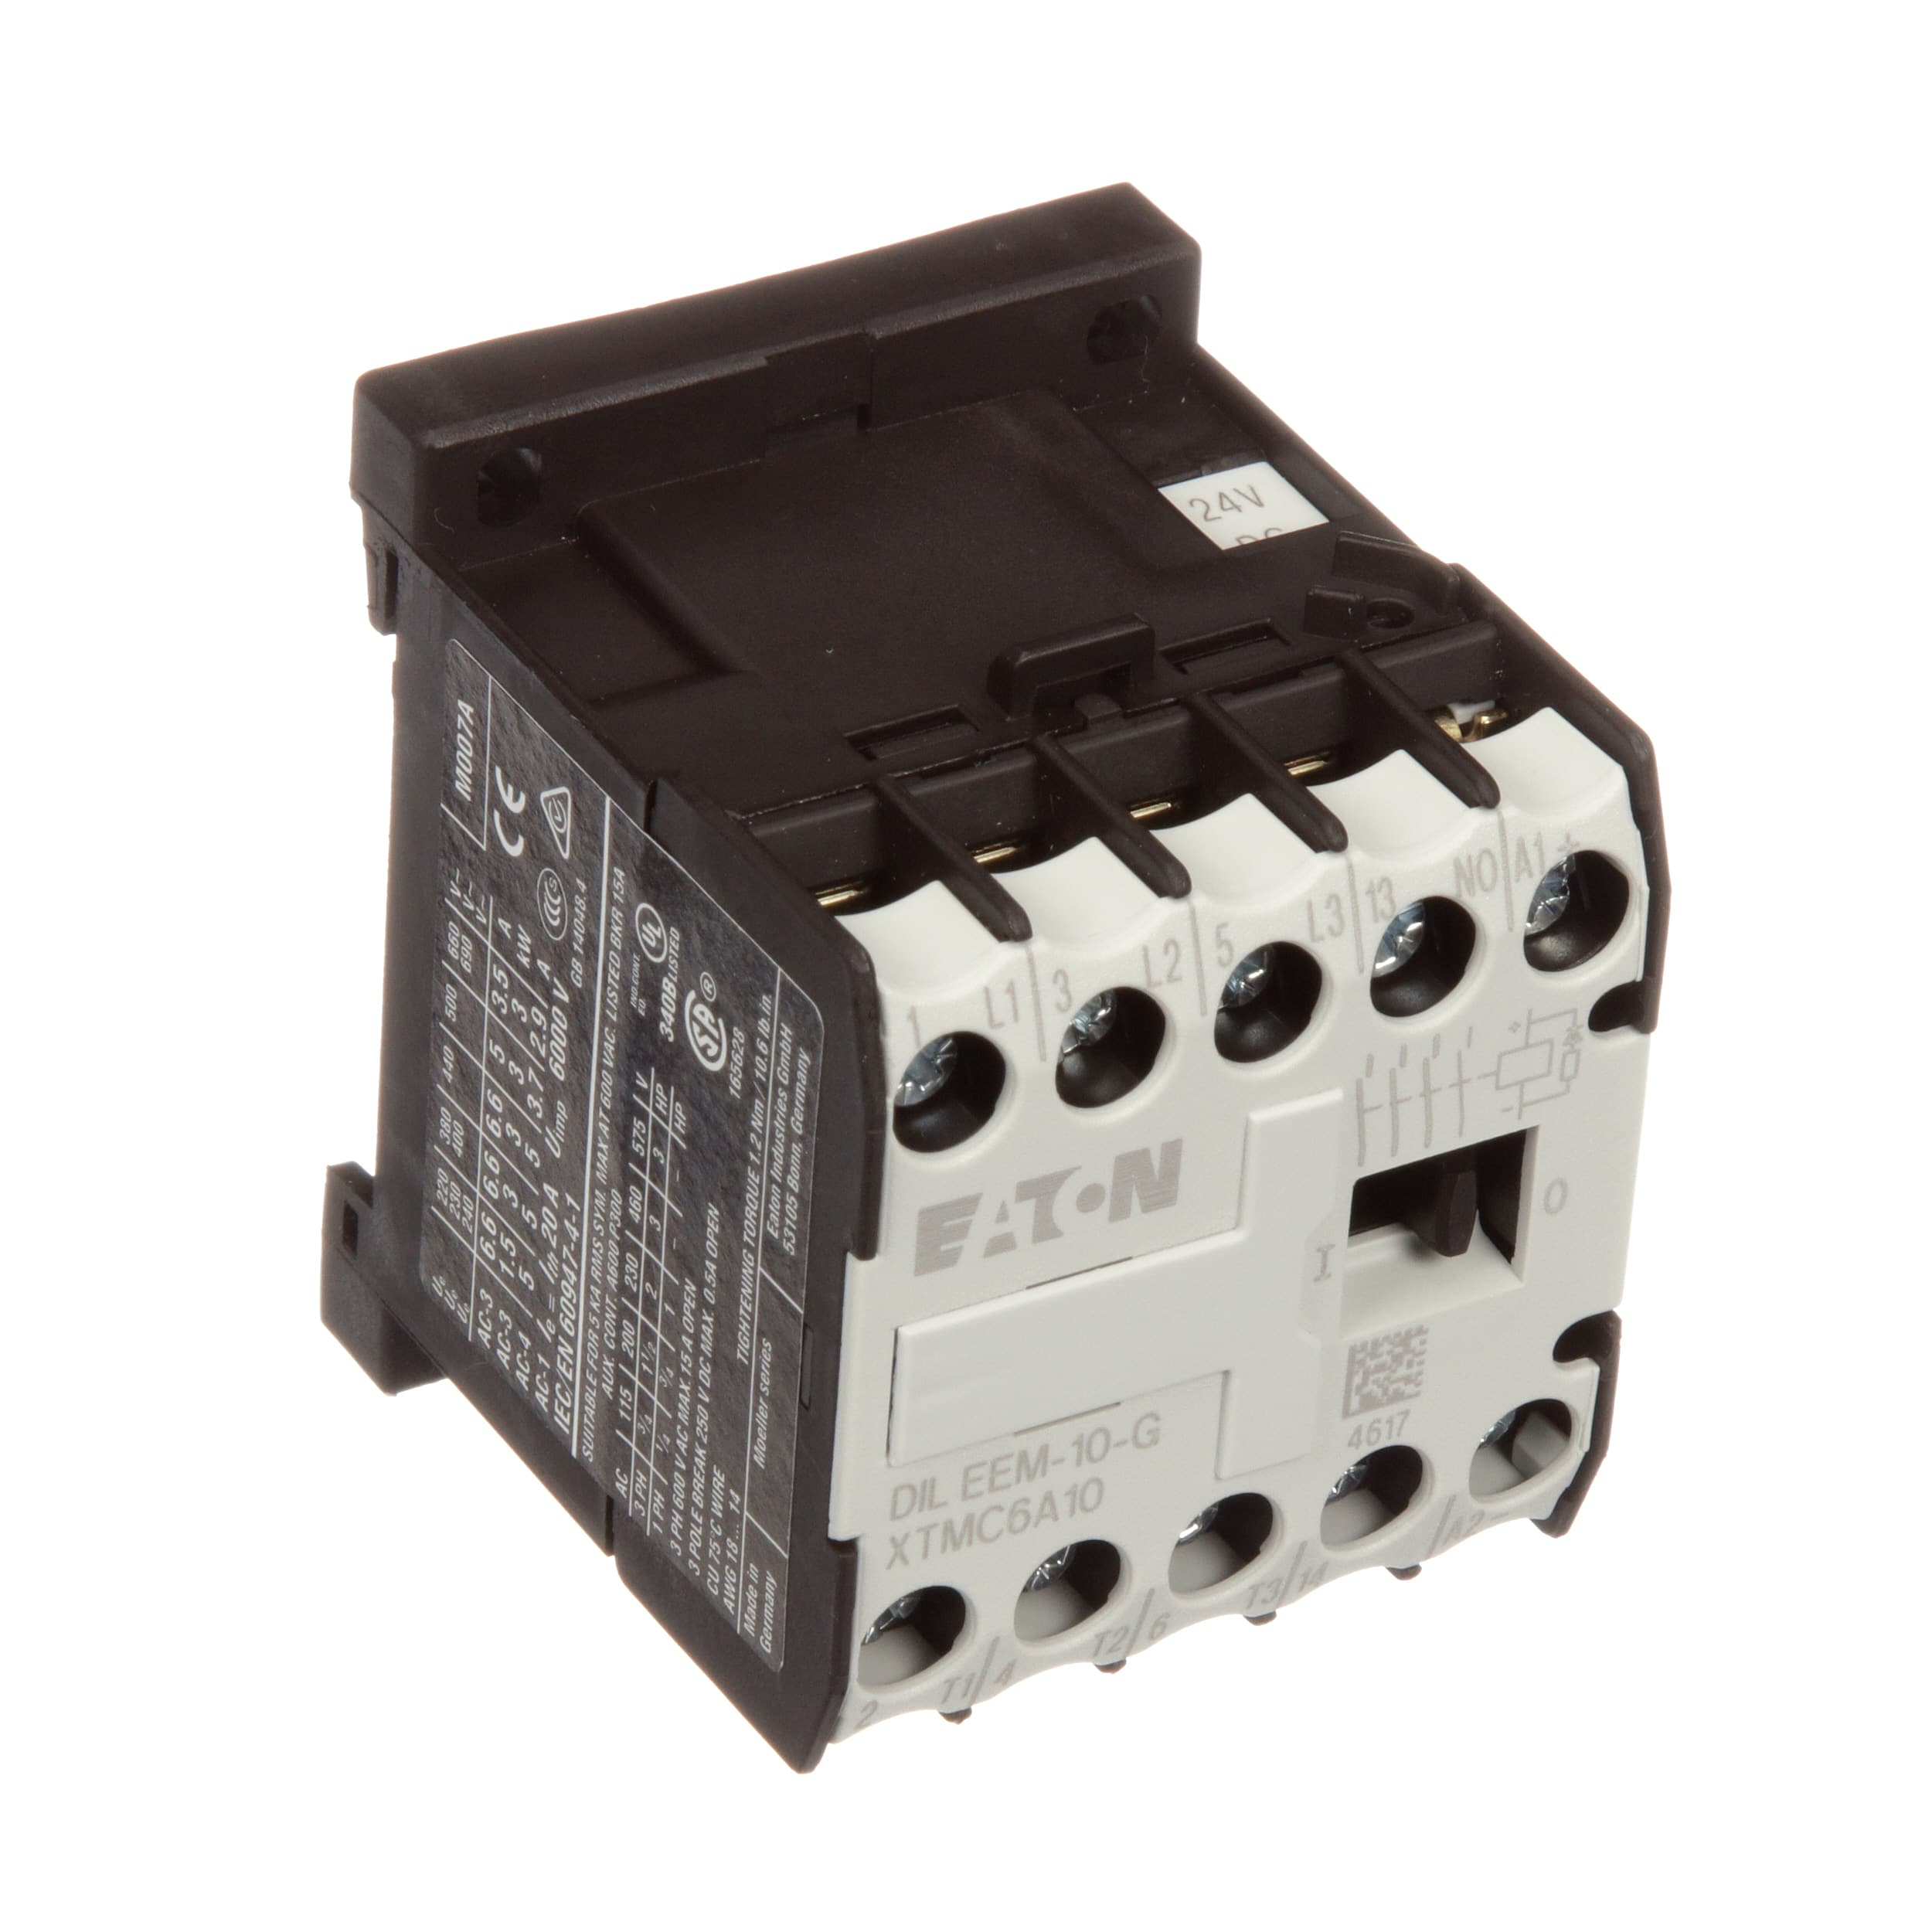 Eaton Cutler Hammer Xtmc6a10td Mini Contactor 3 Pole 6 Amp Vdc Dip Reed Relay All Electronics Corp Frame A 1no Aux 24vdc Coil Allied Automation